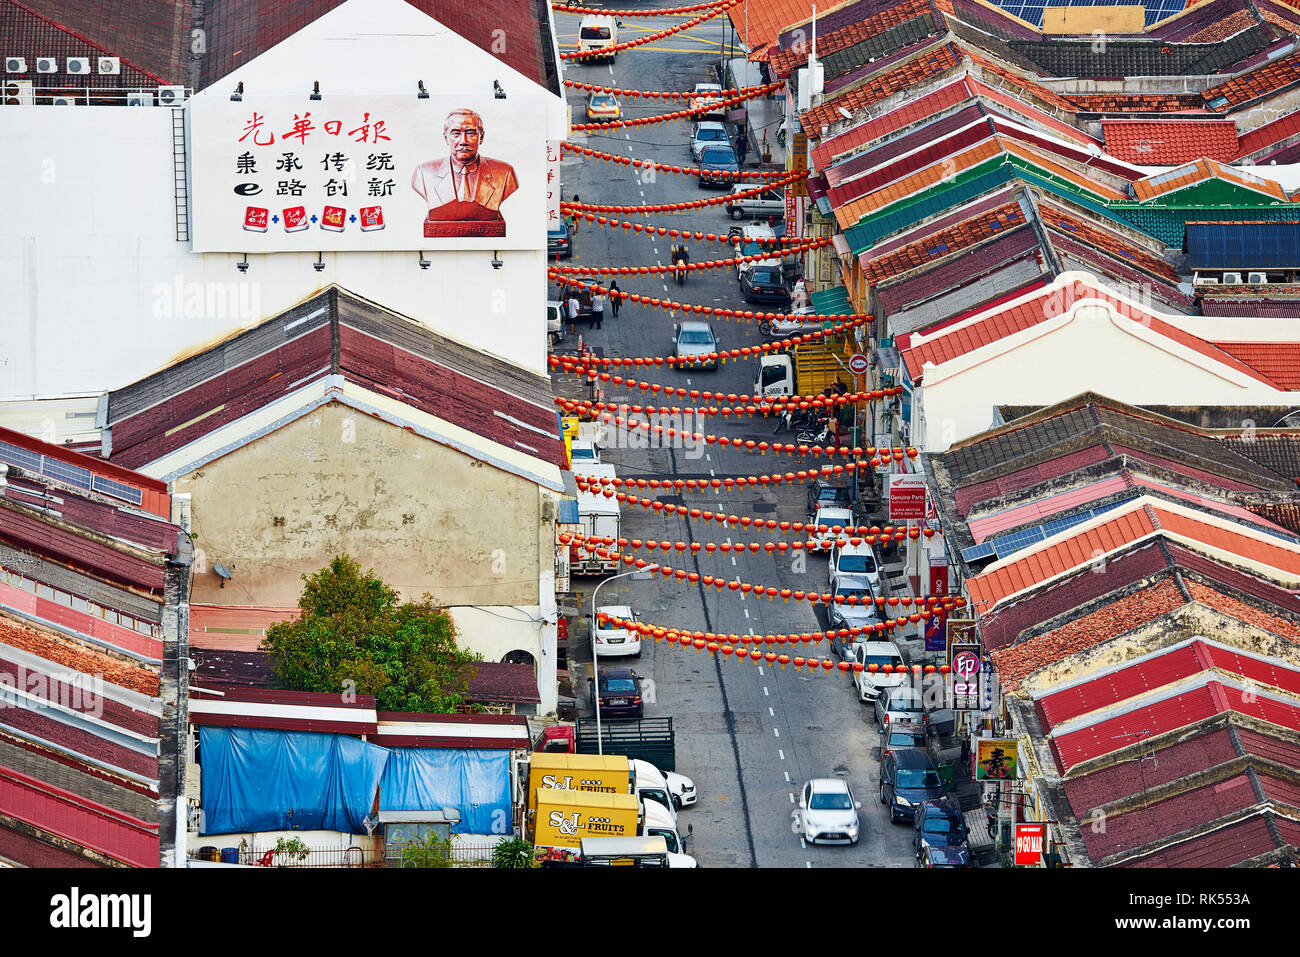 view of the roof and rows of shophouses in the old town from the top of the hotel Neo in George Town, Penang, Malaysia - Stock Image